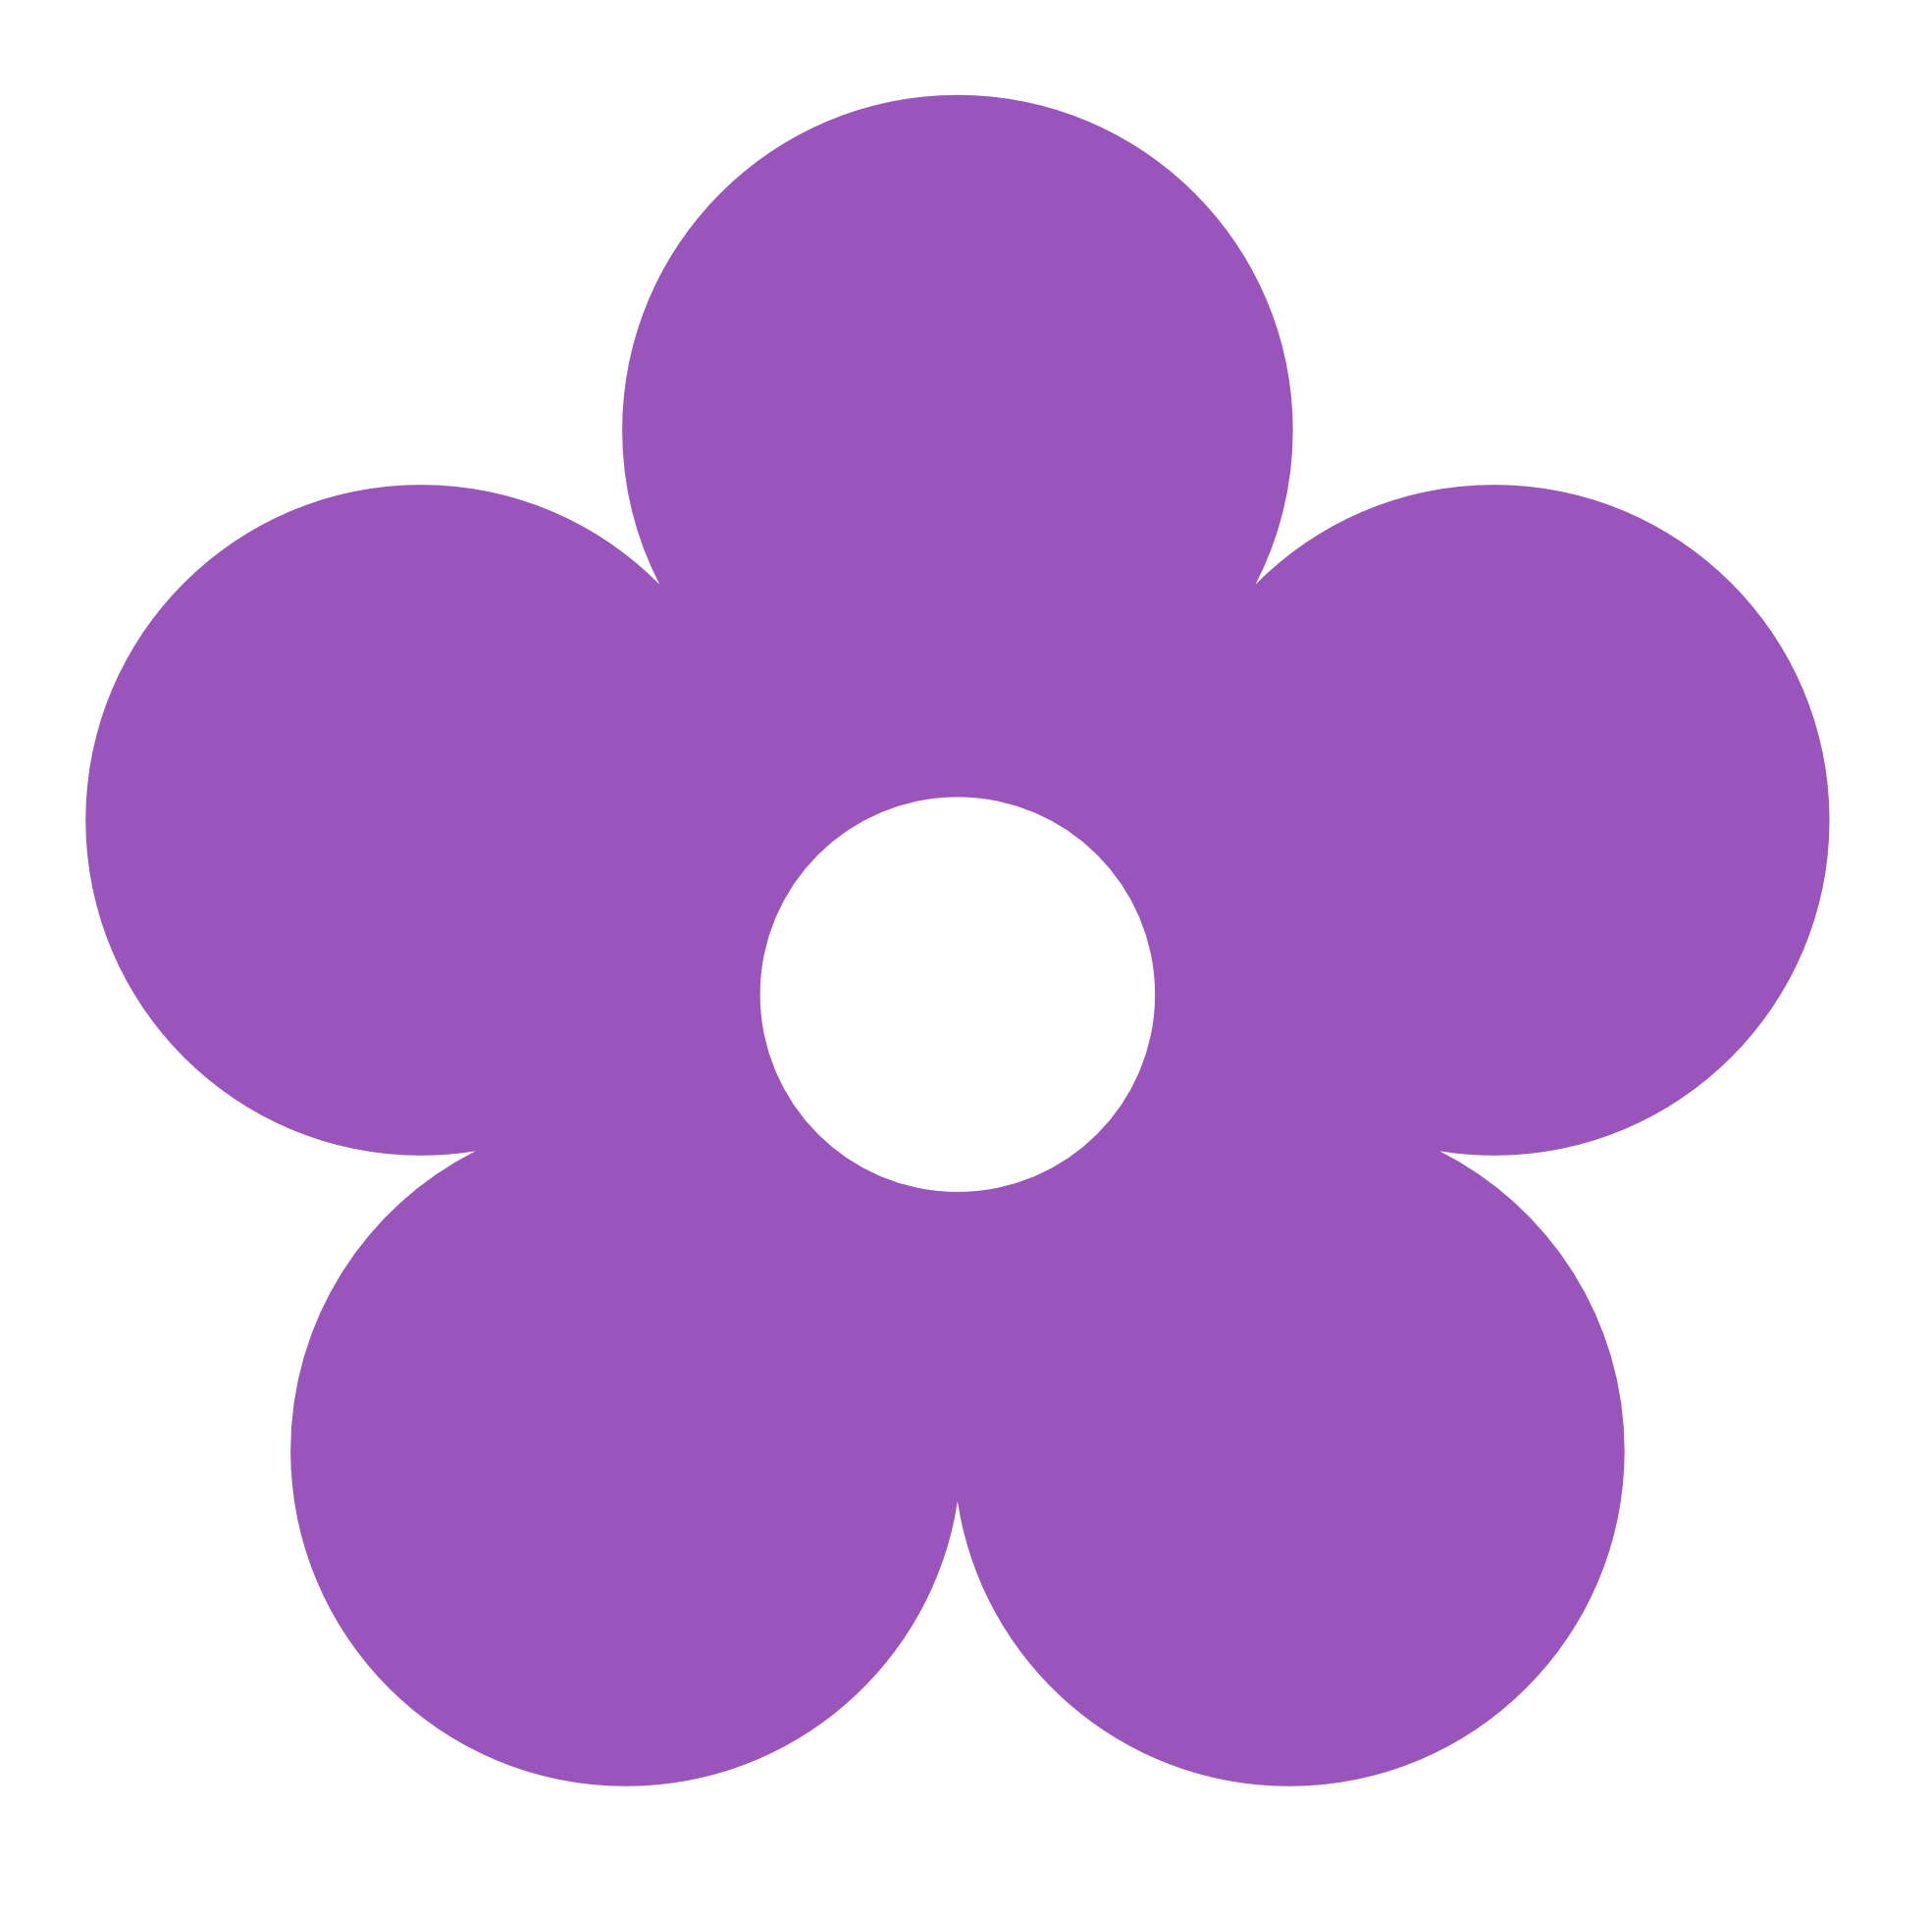 Lavender cross clipart image download Lilac Flower Clip Art   Clipart Panda - Free Clipart Images image download